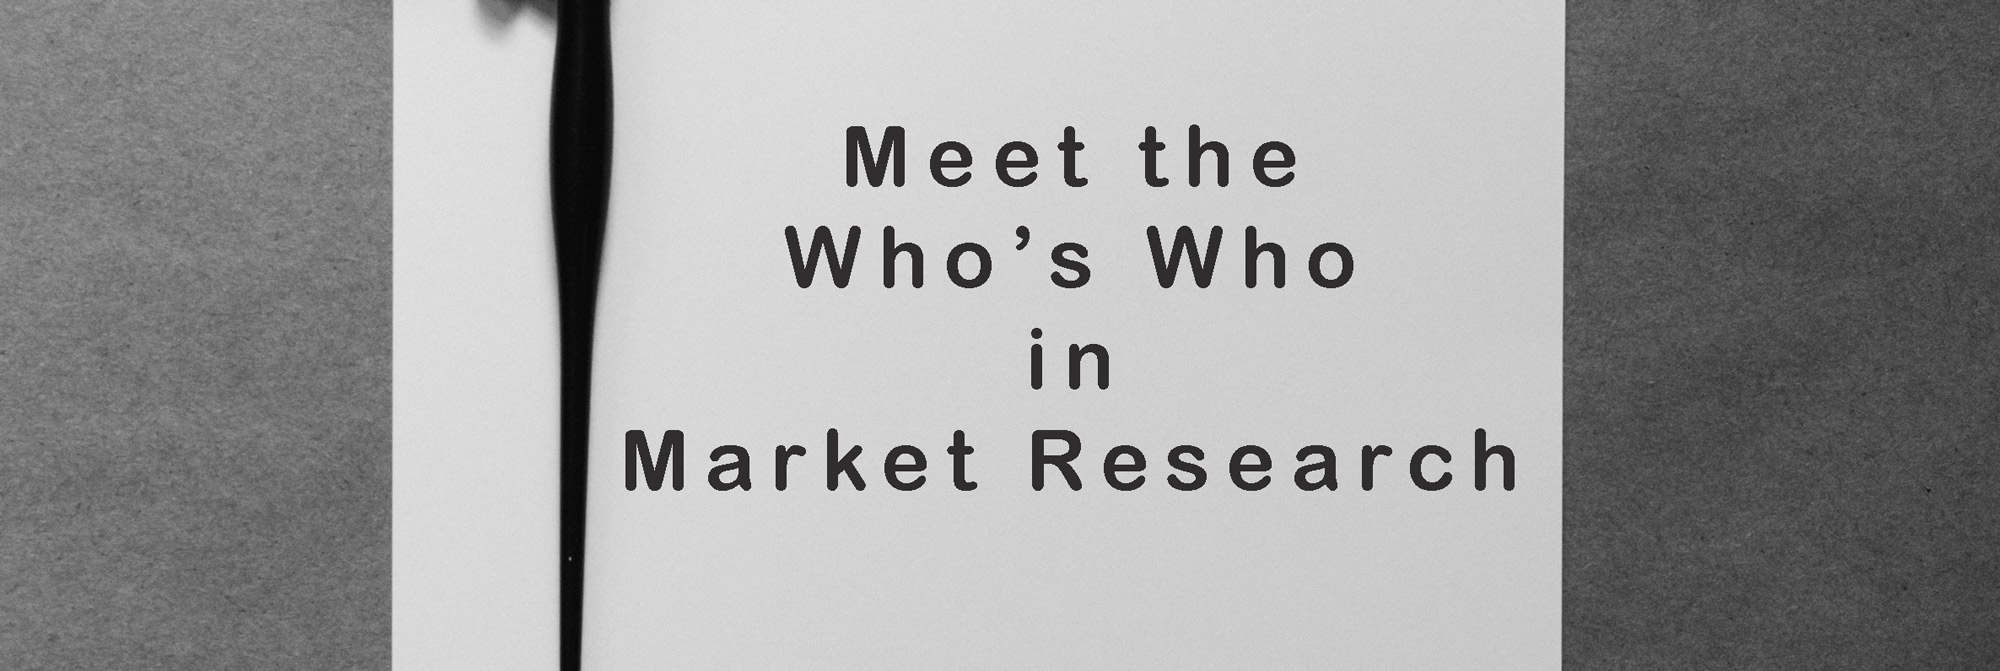 Meet the Who's Who in Market Research